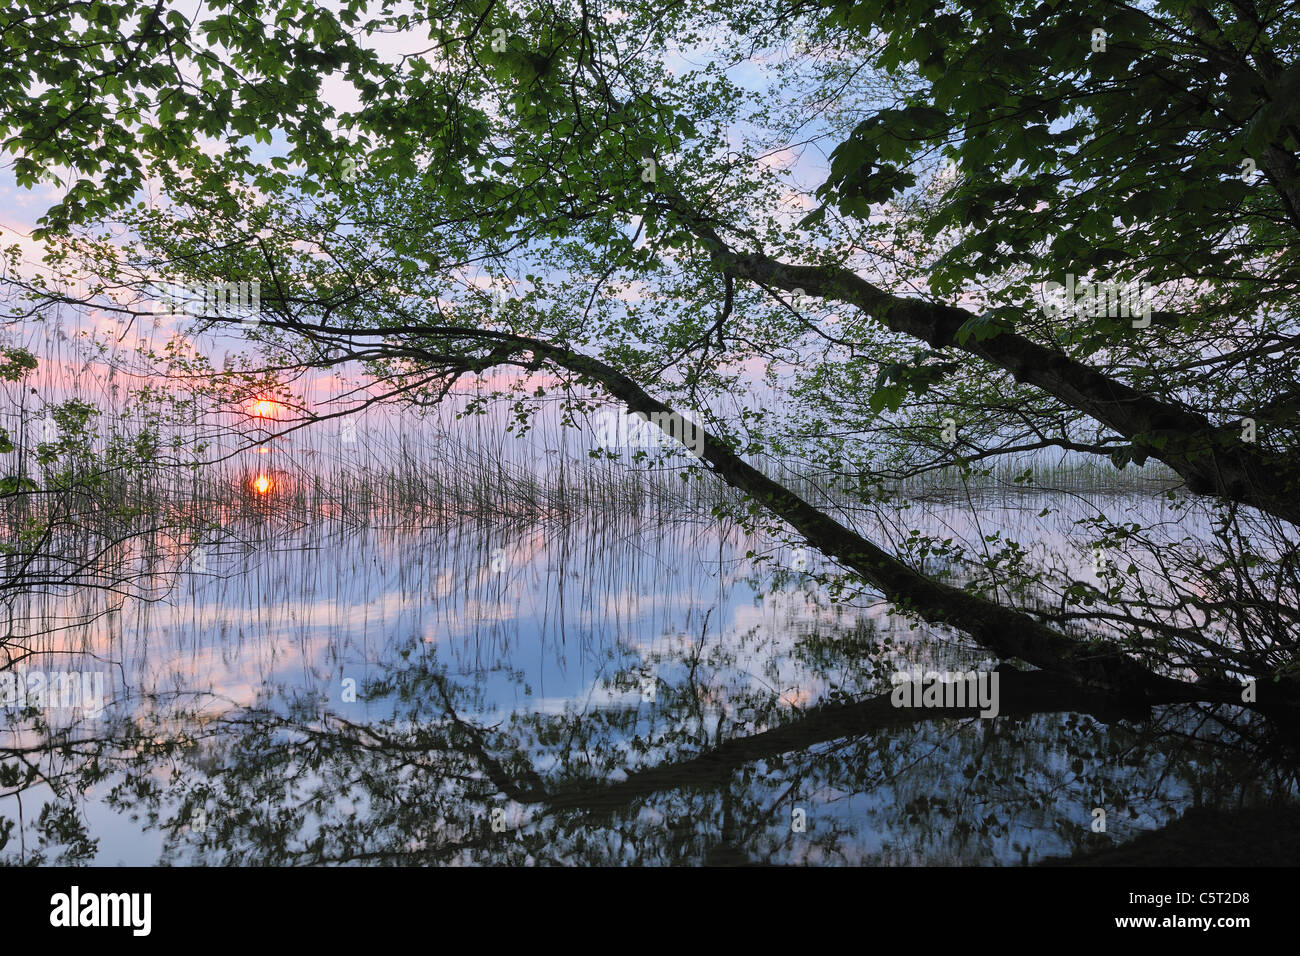 Germany, Mecklenburg-Vorpommern, Mecklenburger Seenplatte, Plau am See, View of sunrise with reeds and trees at - Stock Image